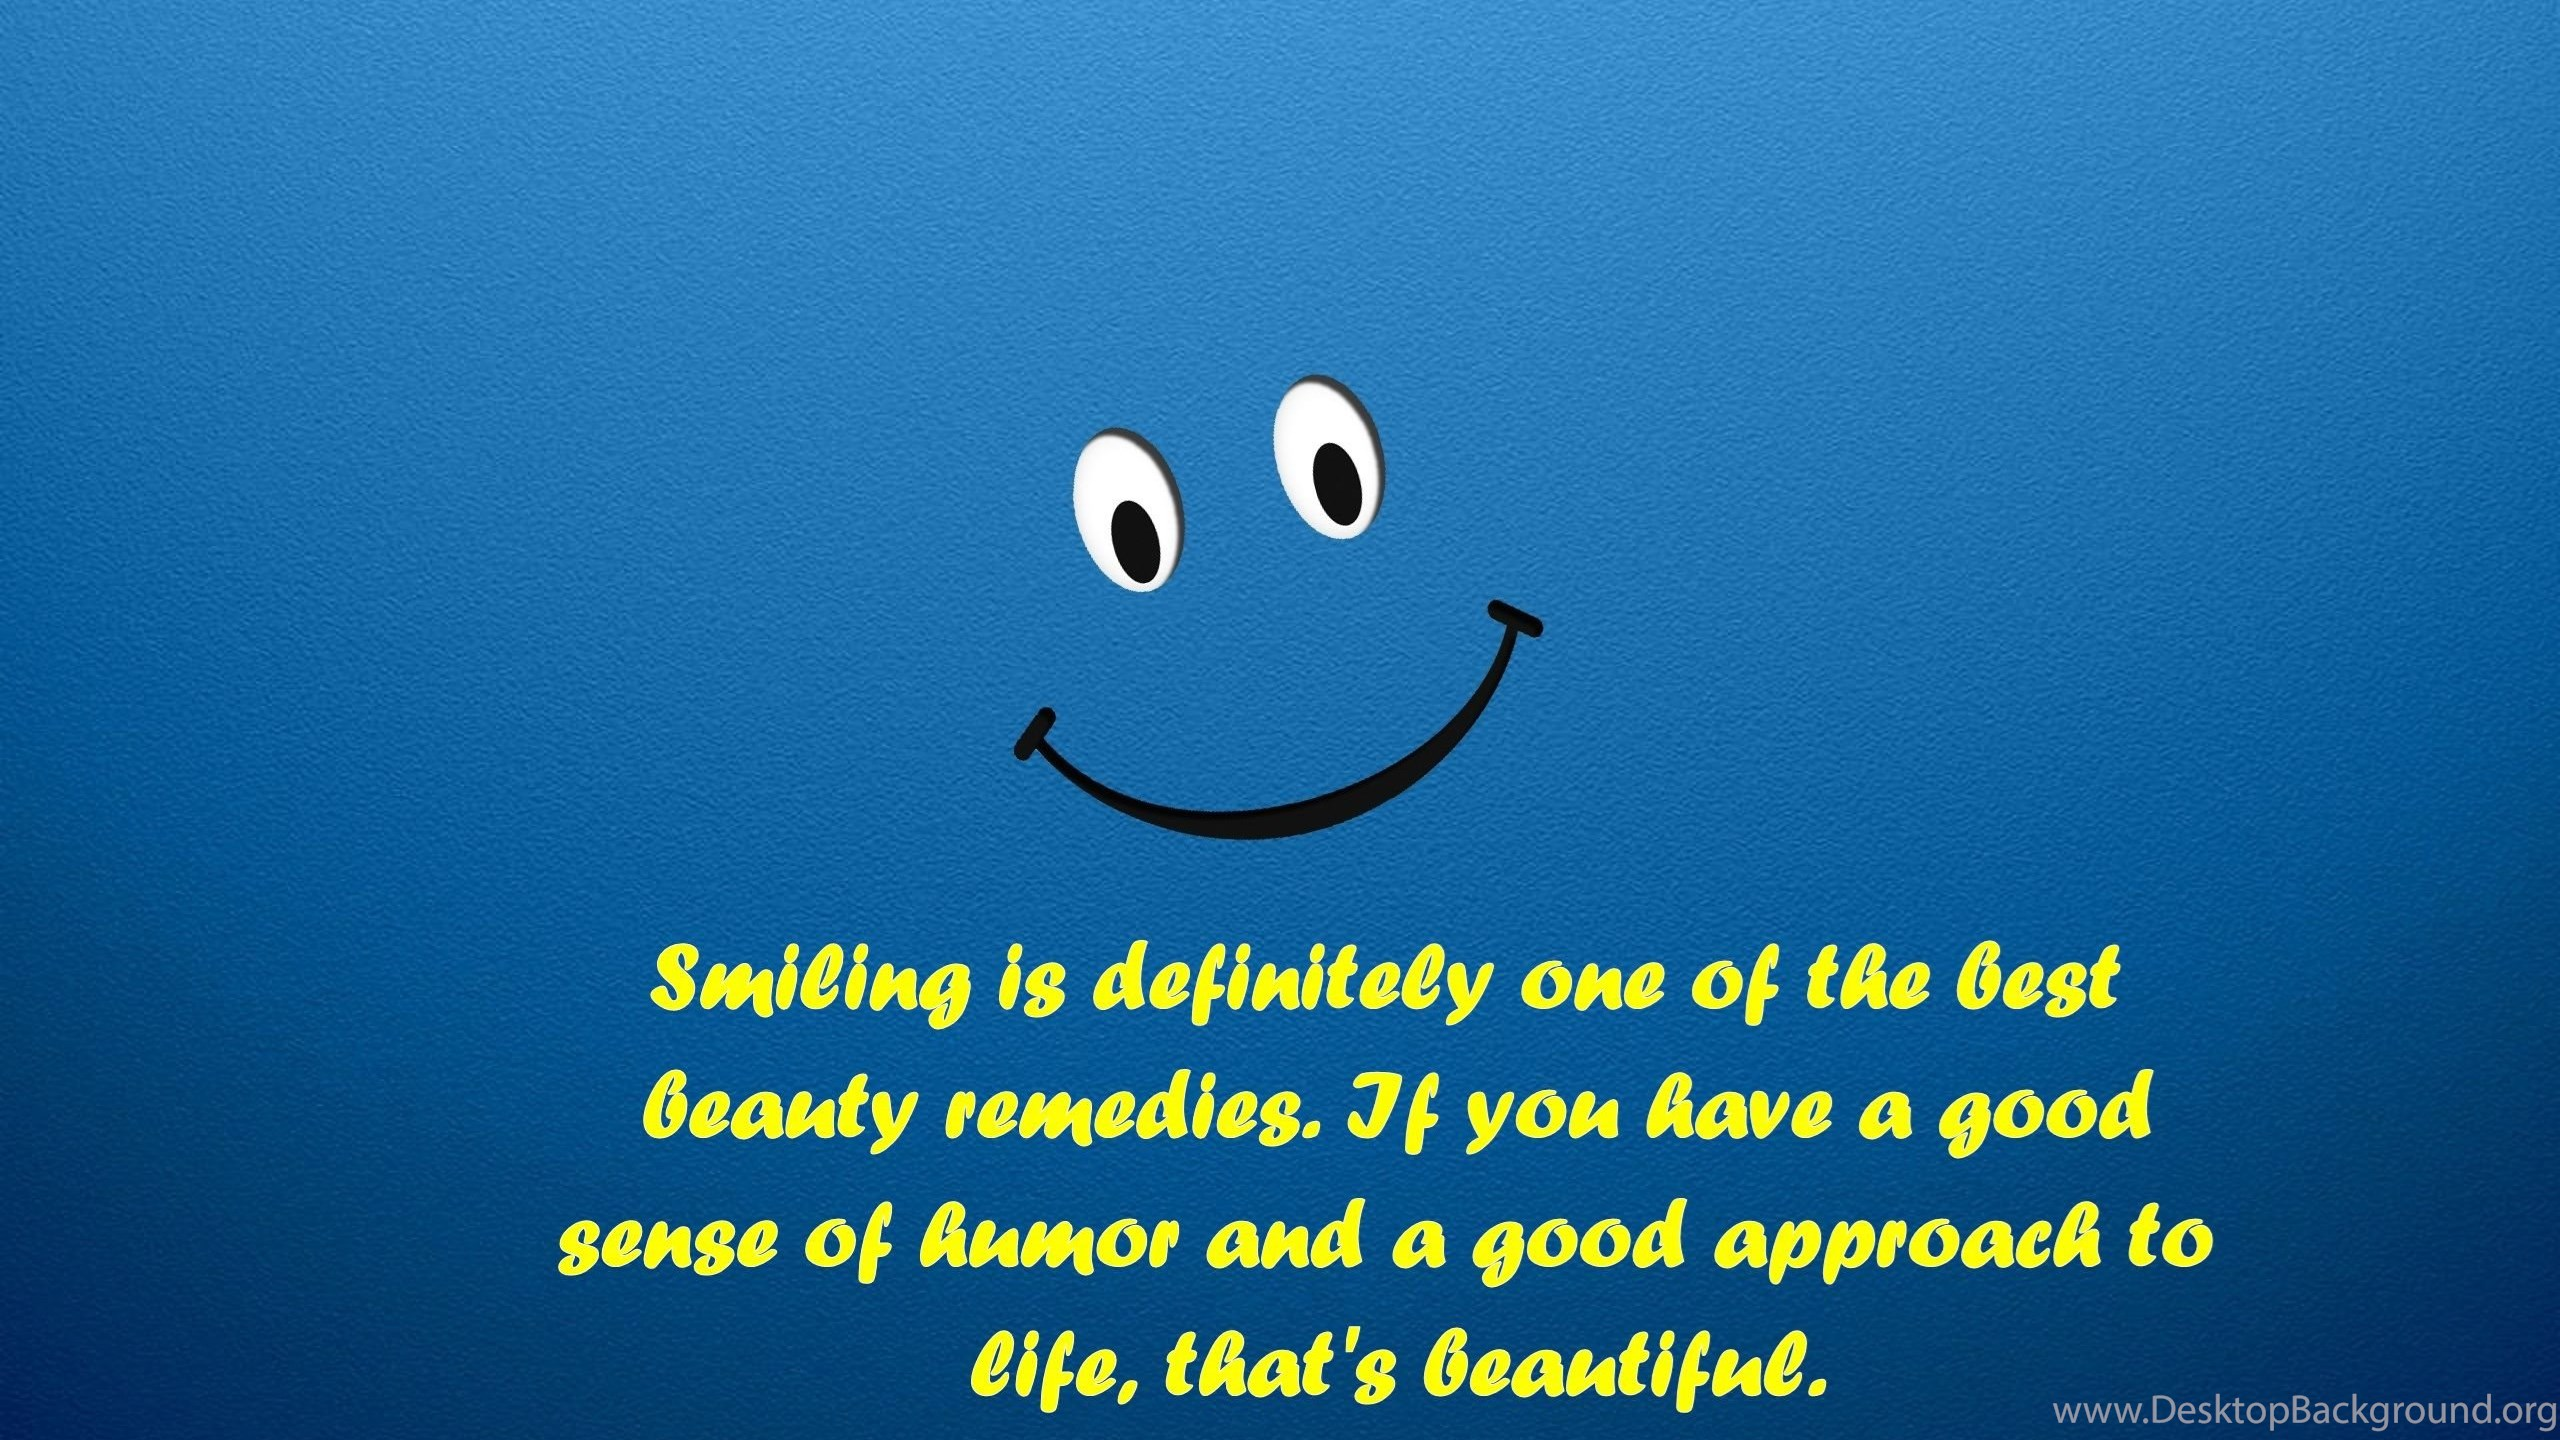 smile quotes wallpapers and images be happy 2015 desktop background